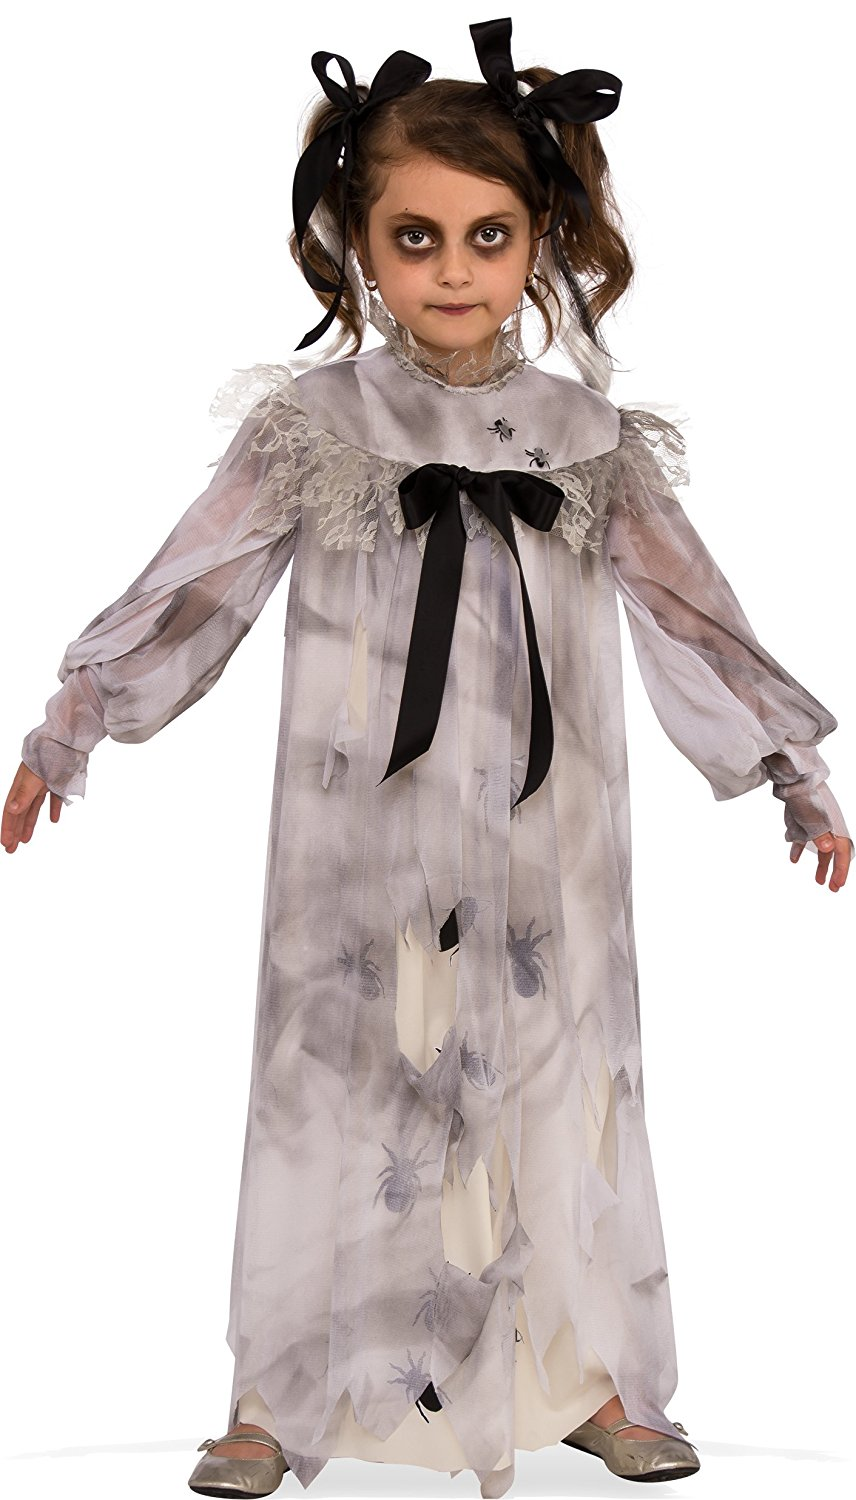 Halloween Costumes For Girls Scary.Details About Sweet Screams Dress Creepy Doll Scary Little Girls Child Halloween Costume Sm Lg